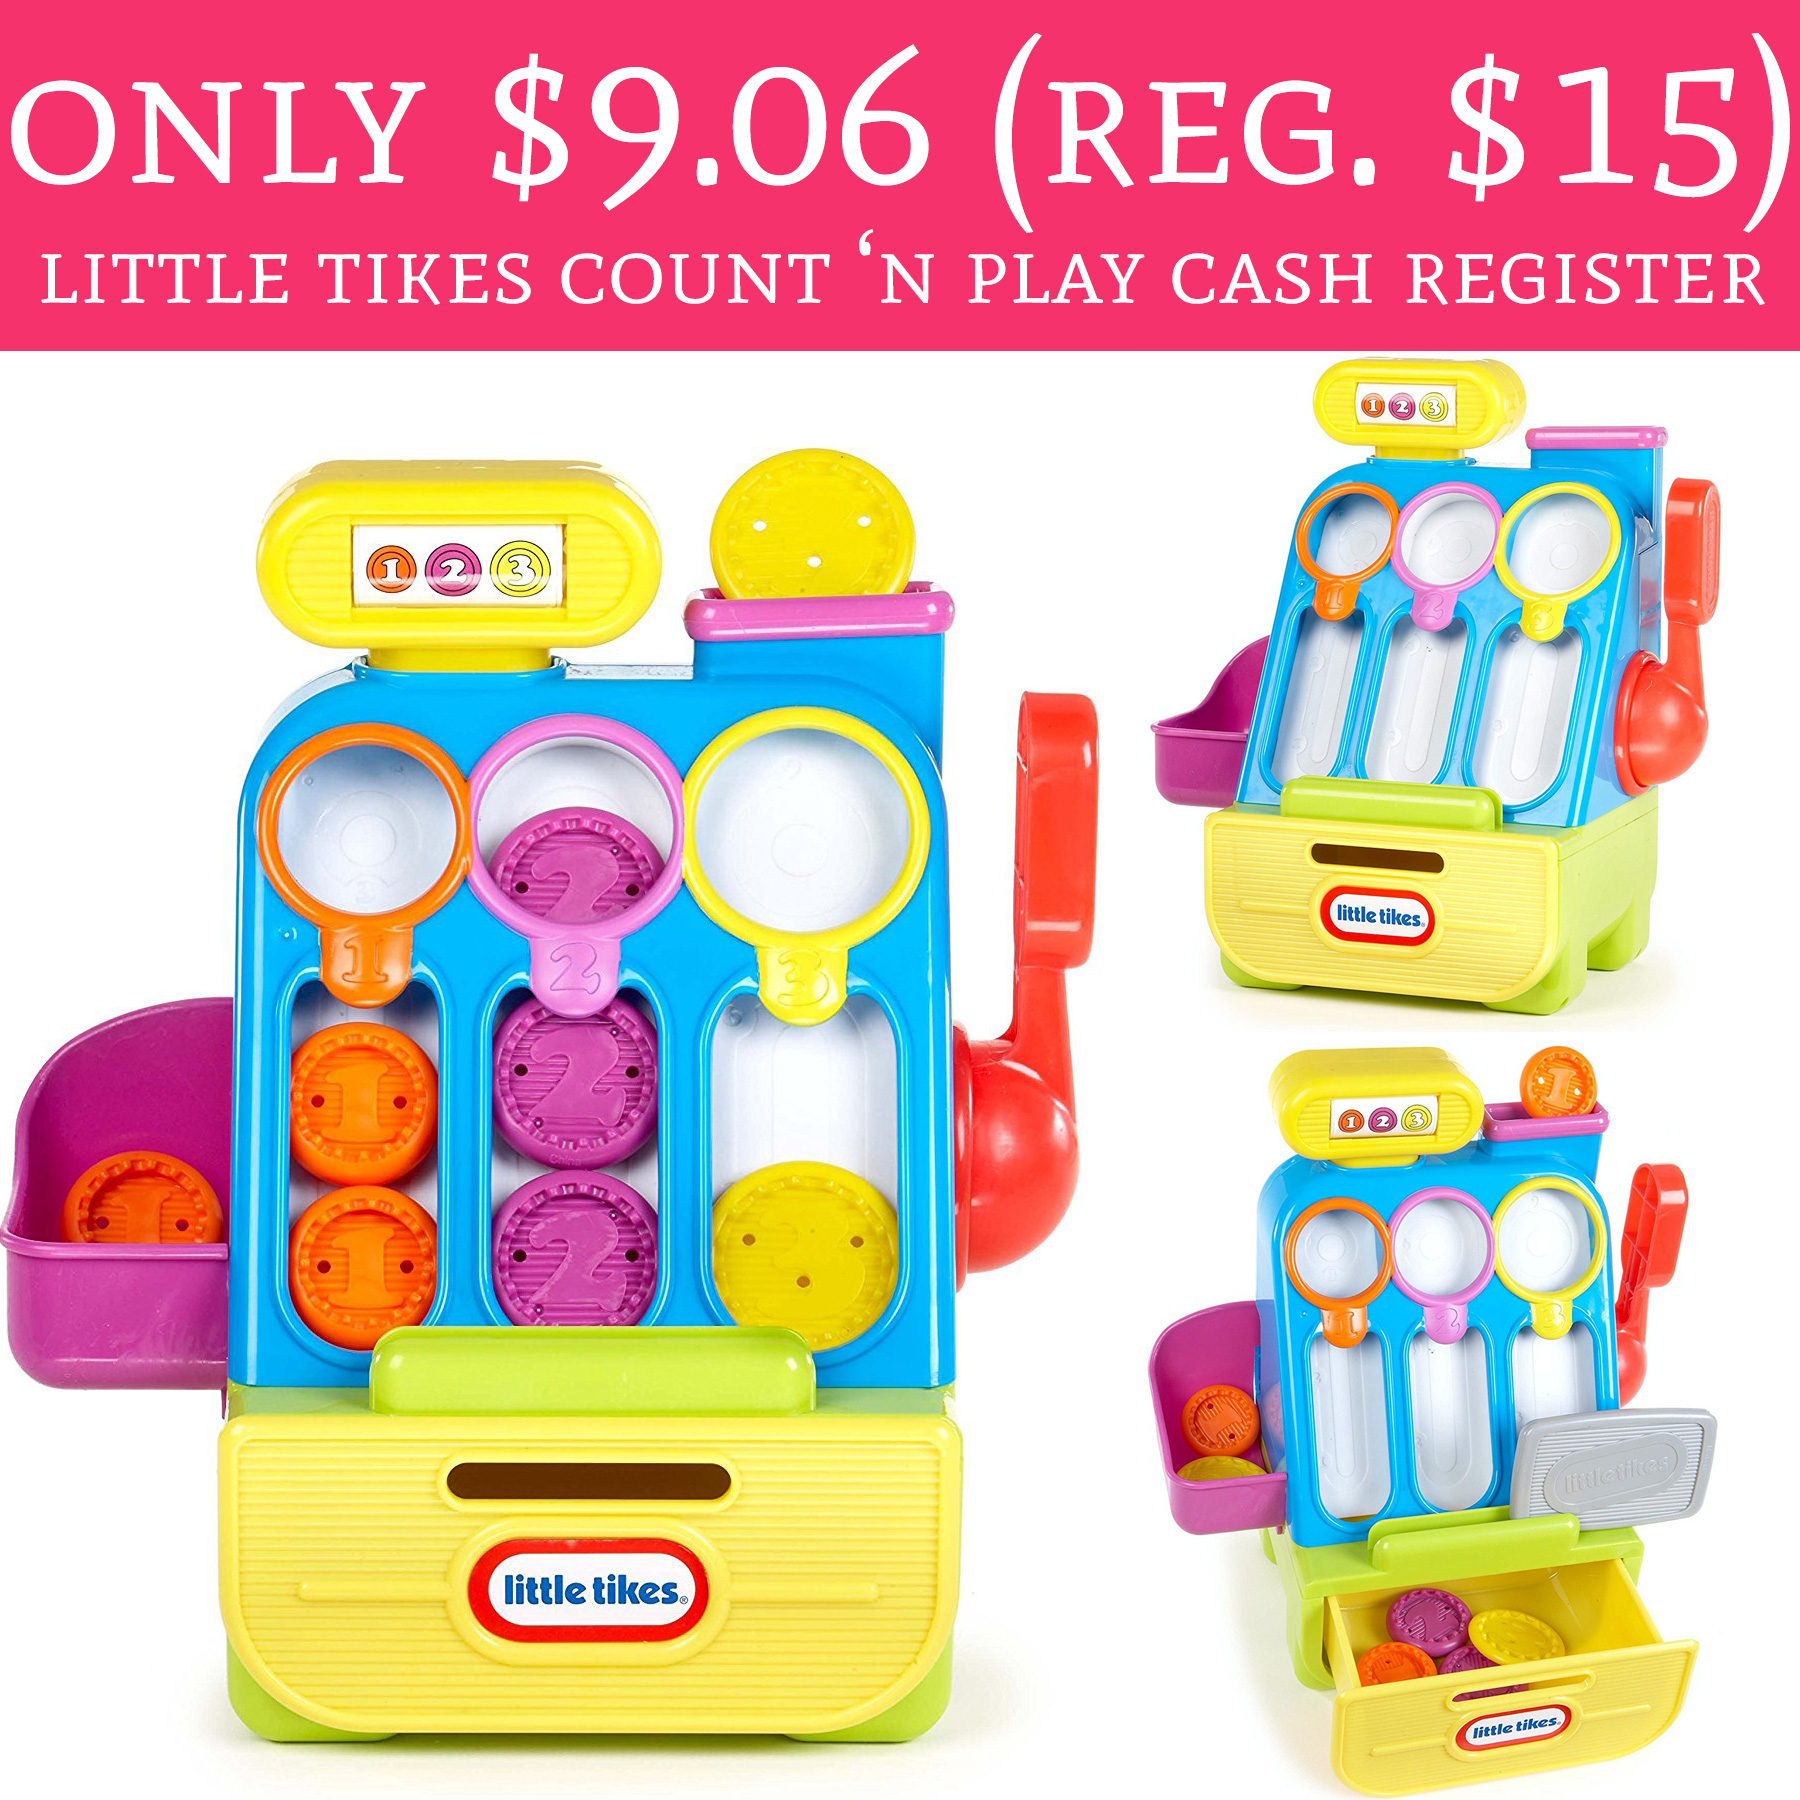 Little tikes cash register - Wow This Is A Great Price